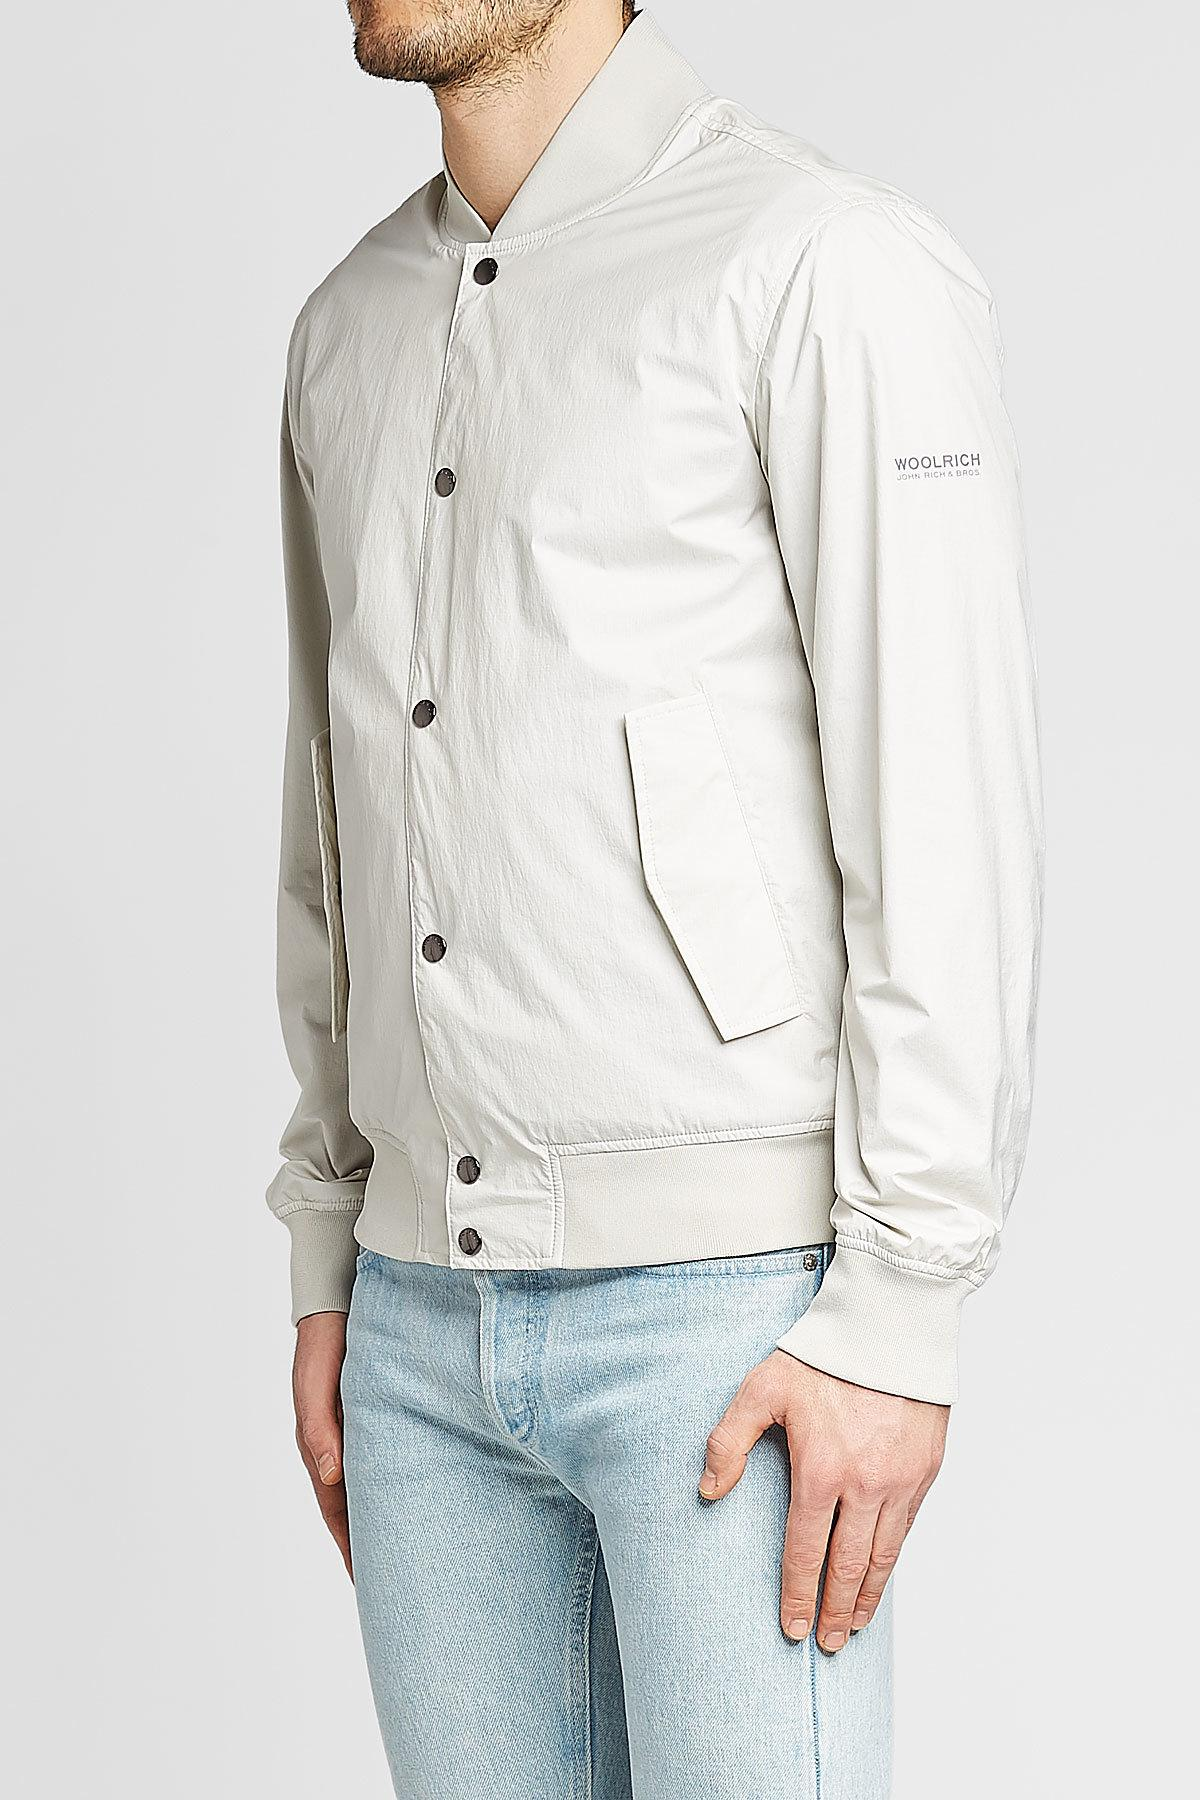 78b468e87 Lyst - Woolrich Wallaby Bomber Jacket in Natural for Men